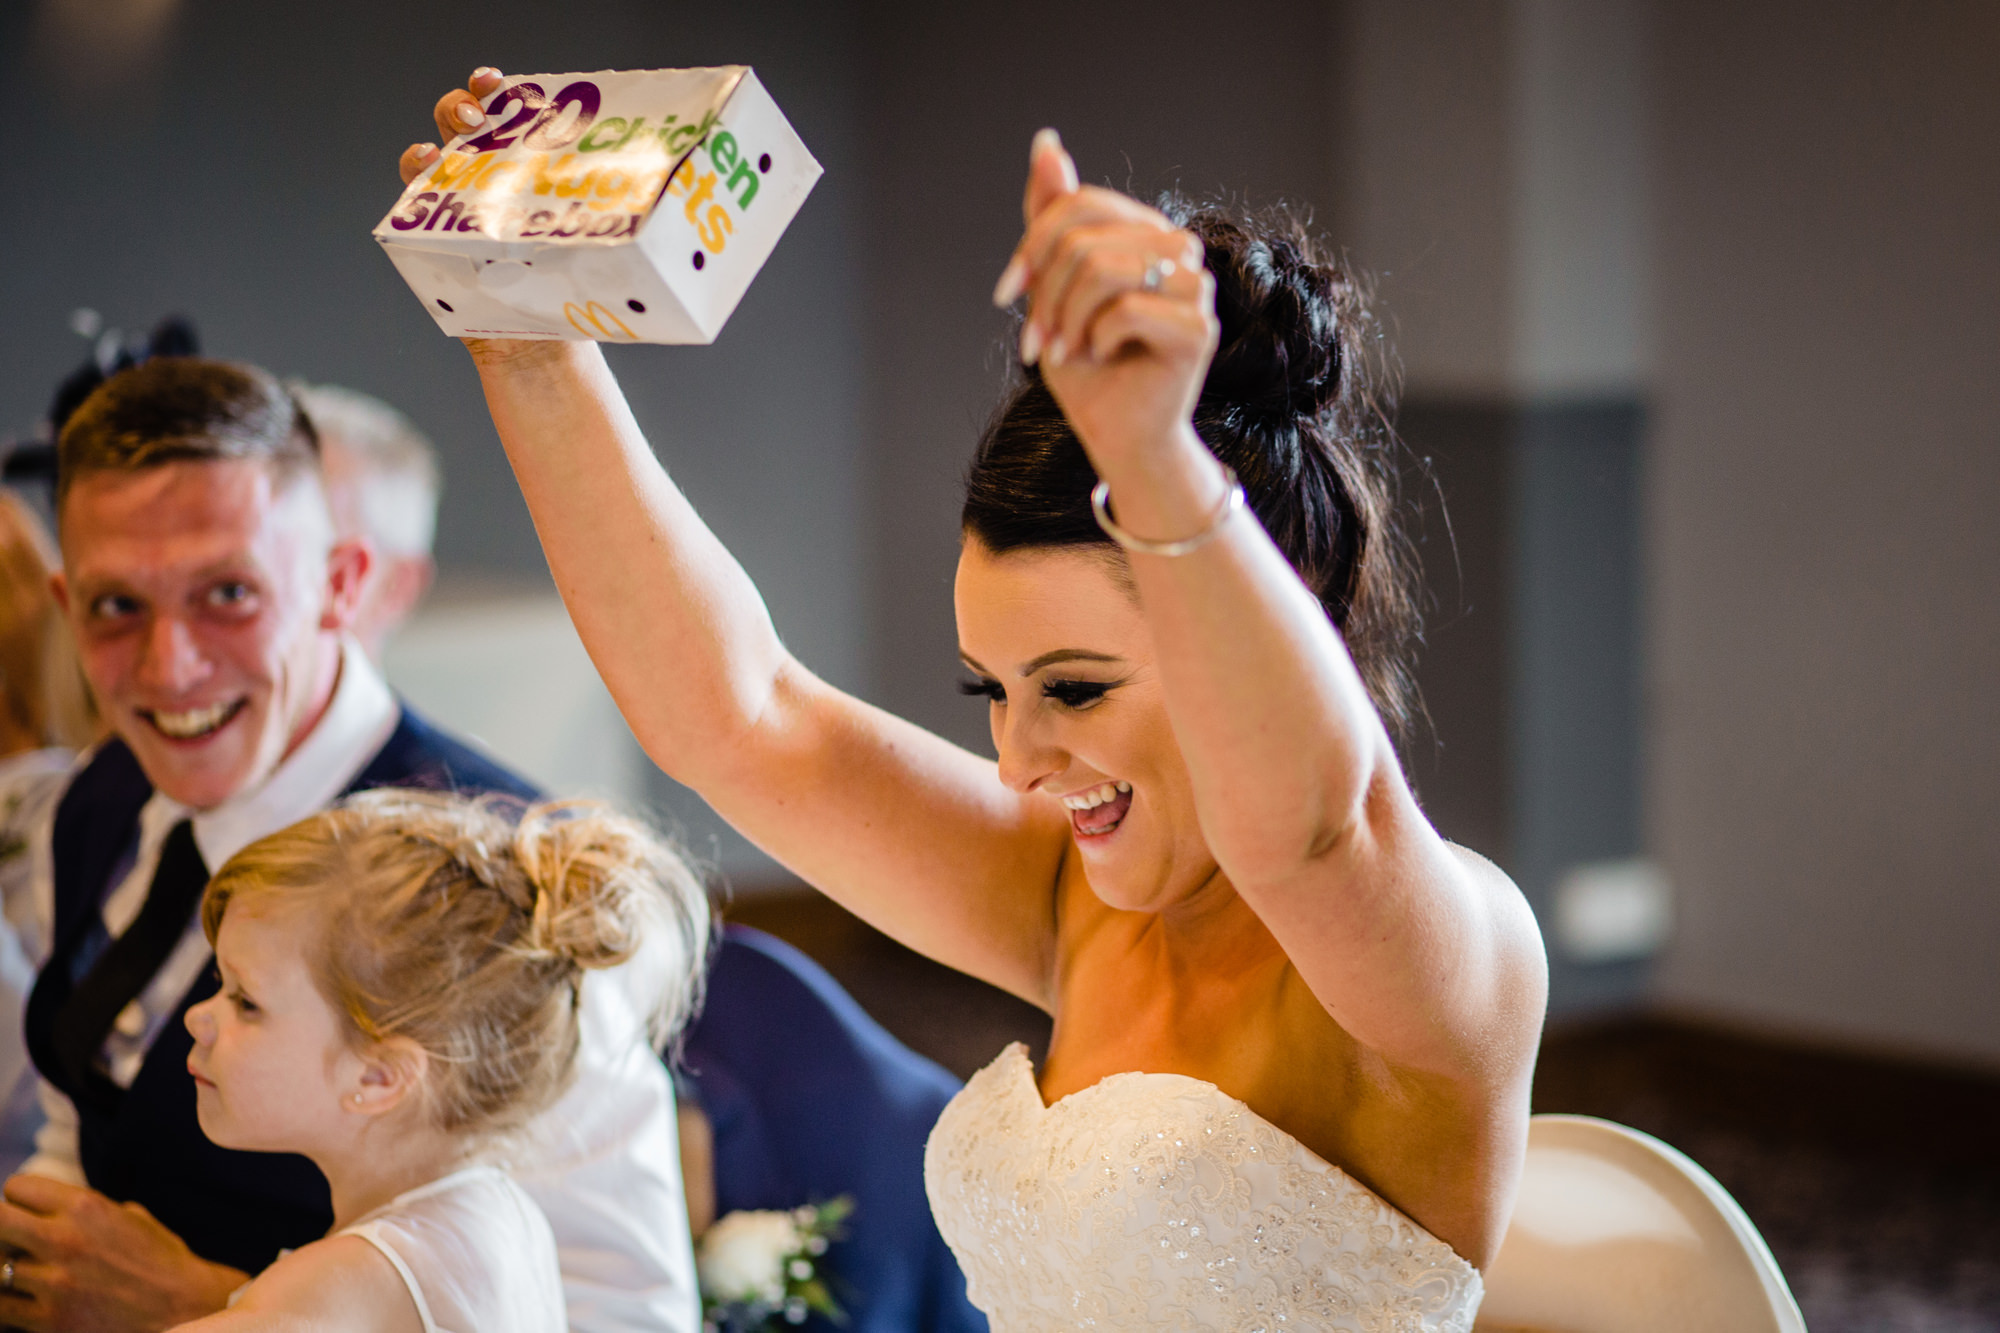 bride celebrates as she receives a box of chicken mcnuggets as a gift. huntsman inn wedding photography by emma and rich.